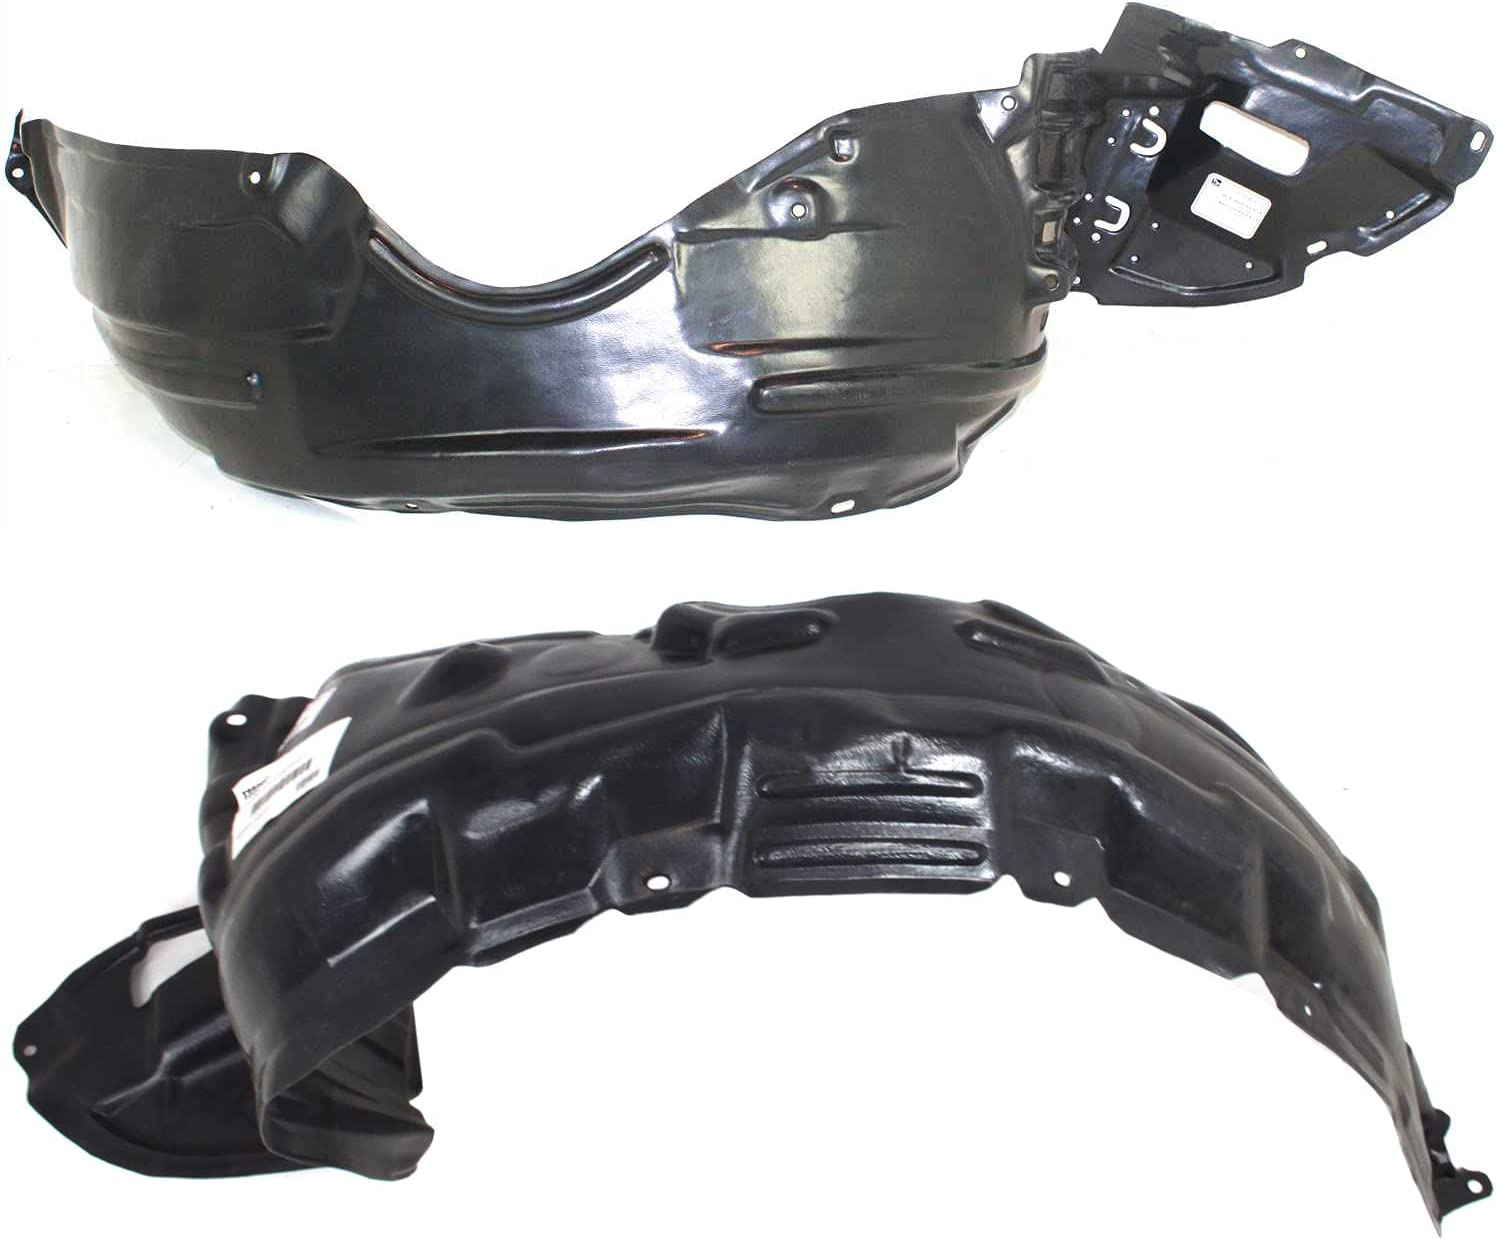 Garage-Pro Max 60% Complete Free Shipping OFF Aftermarket Front Fender Toyota 2000-2005 Celic Liner